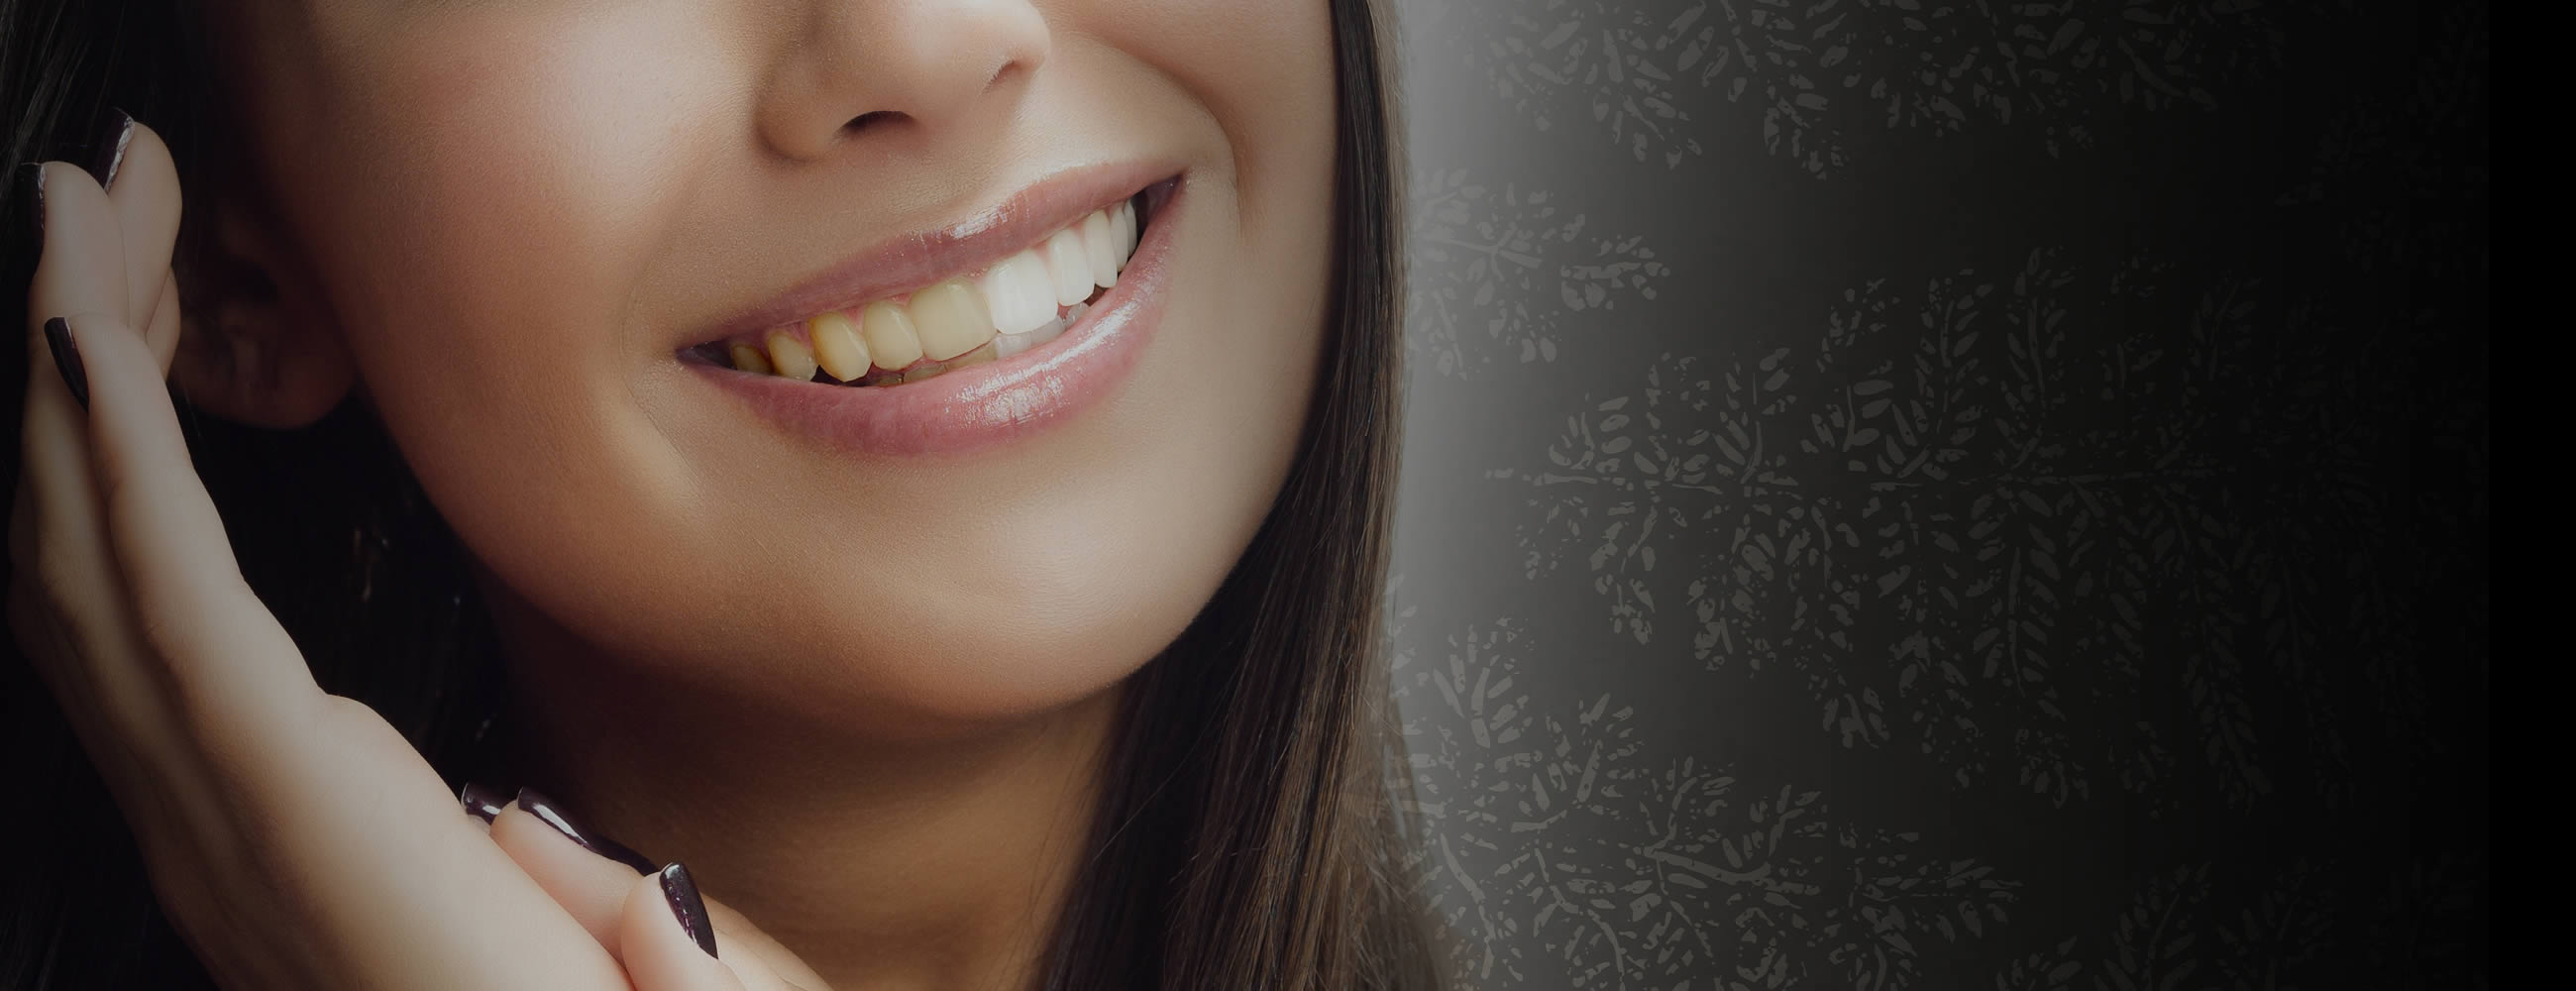 Teeth Whitening in Hampstead, North London